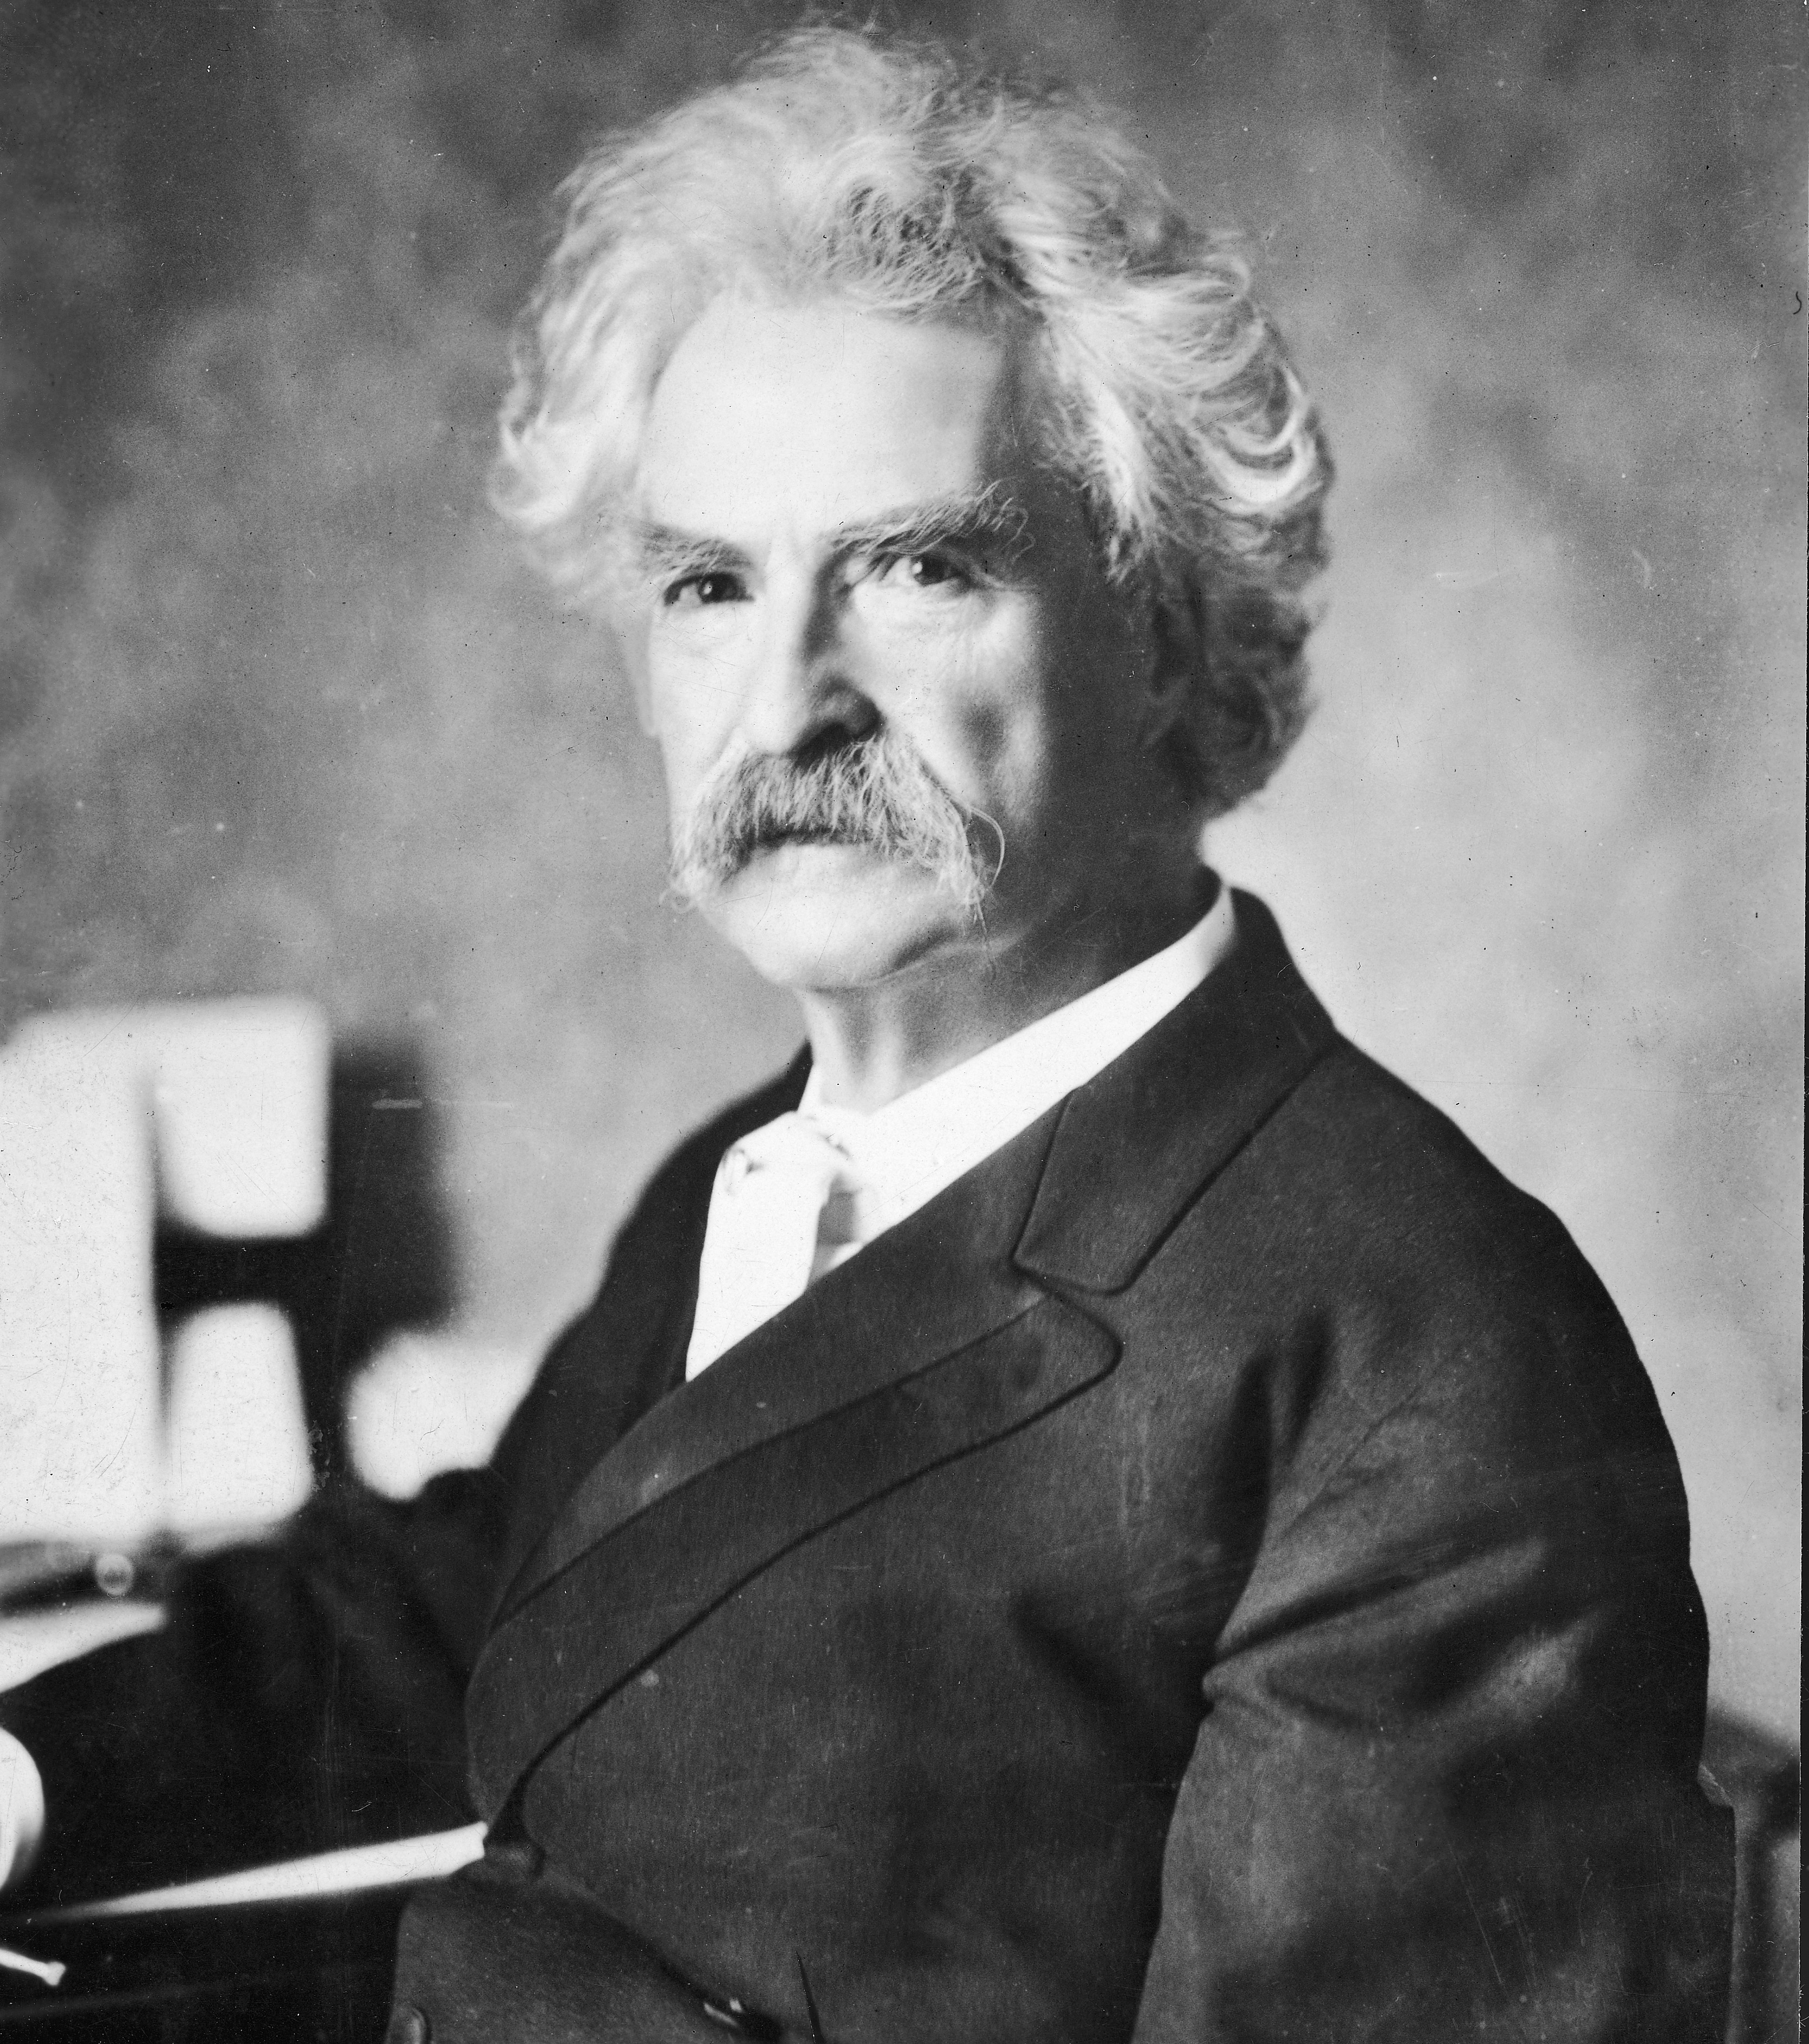 A portrait of American writer Mark Twain (Samuel Clemens, 1835 - 1910), circa 1900. Hulton Archive—Getty Images